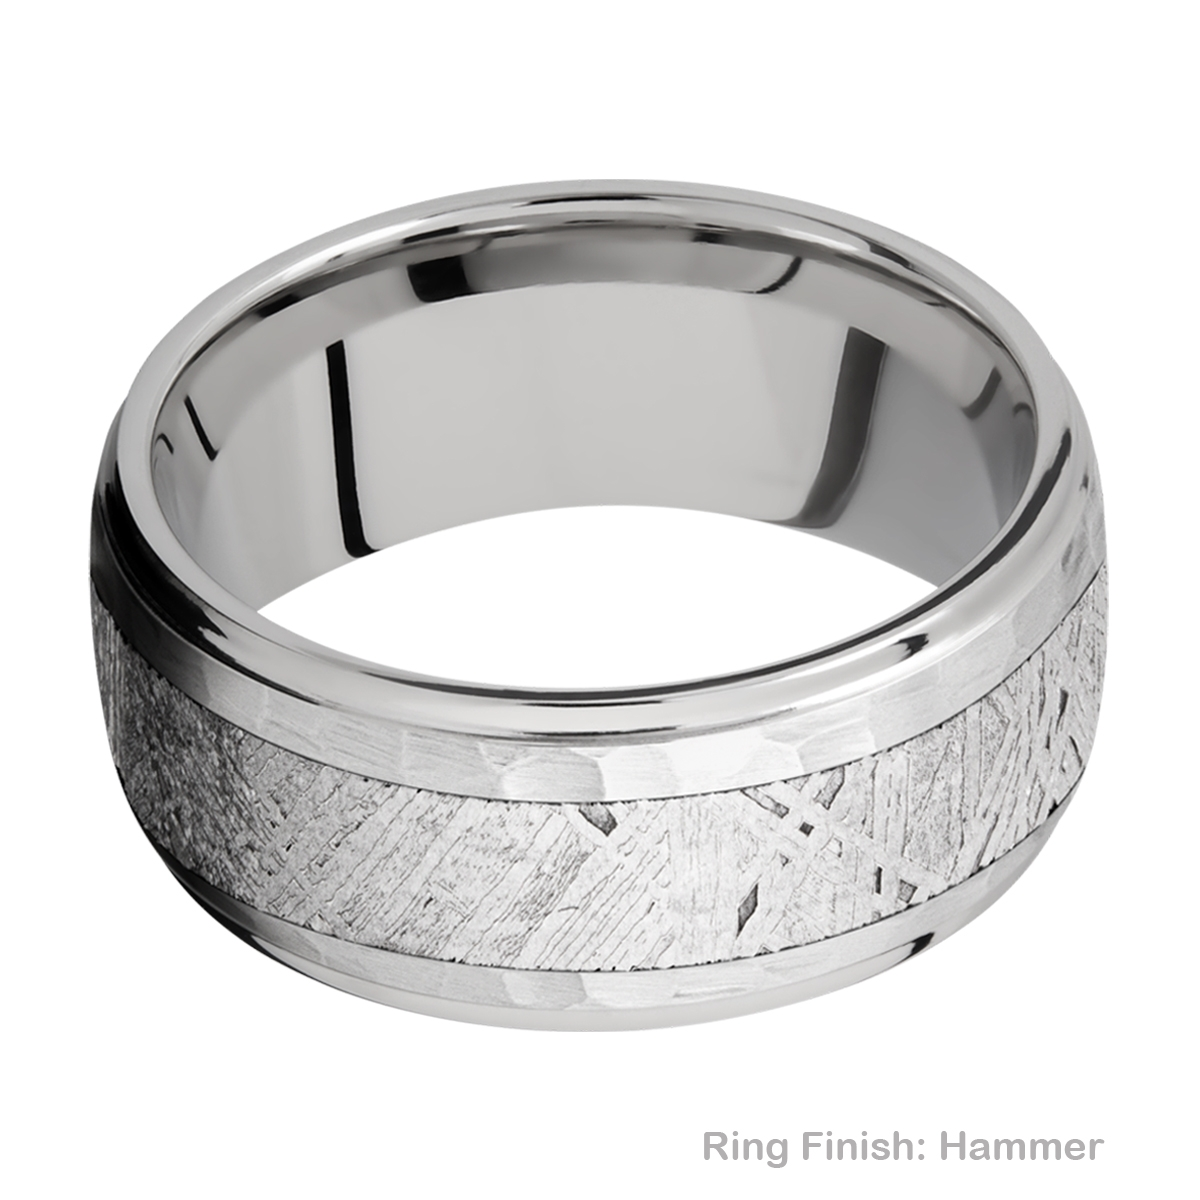 Lashbrook 10DGE15/METEORITE Titanium Wedding Ring or Band Alternative View 8